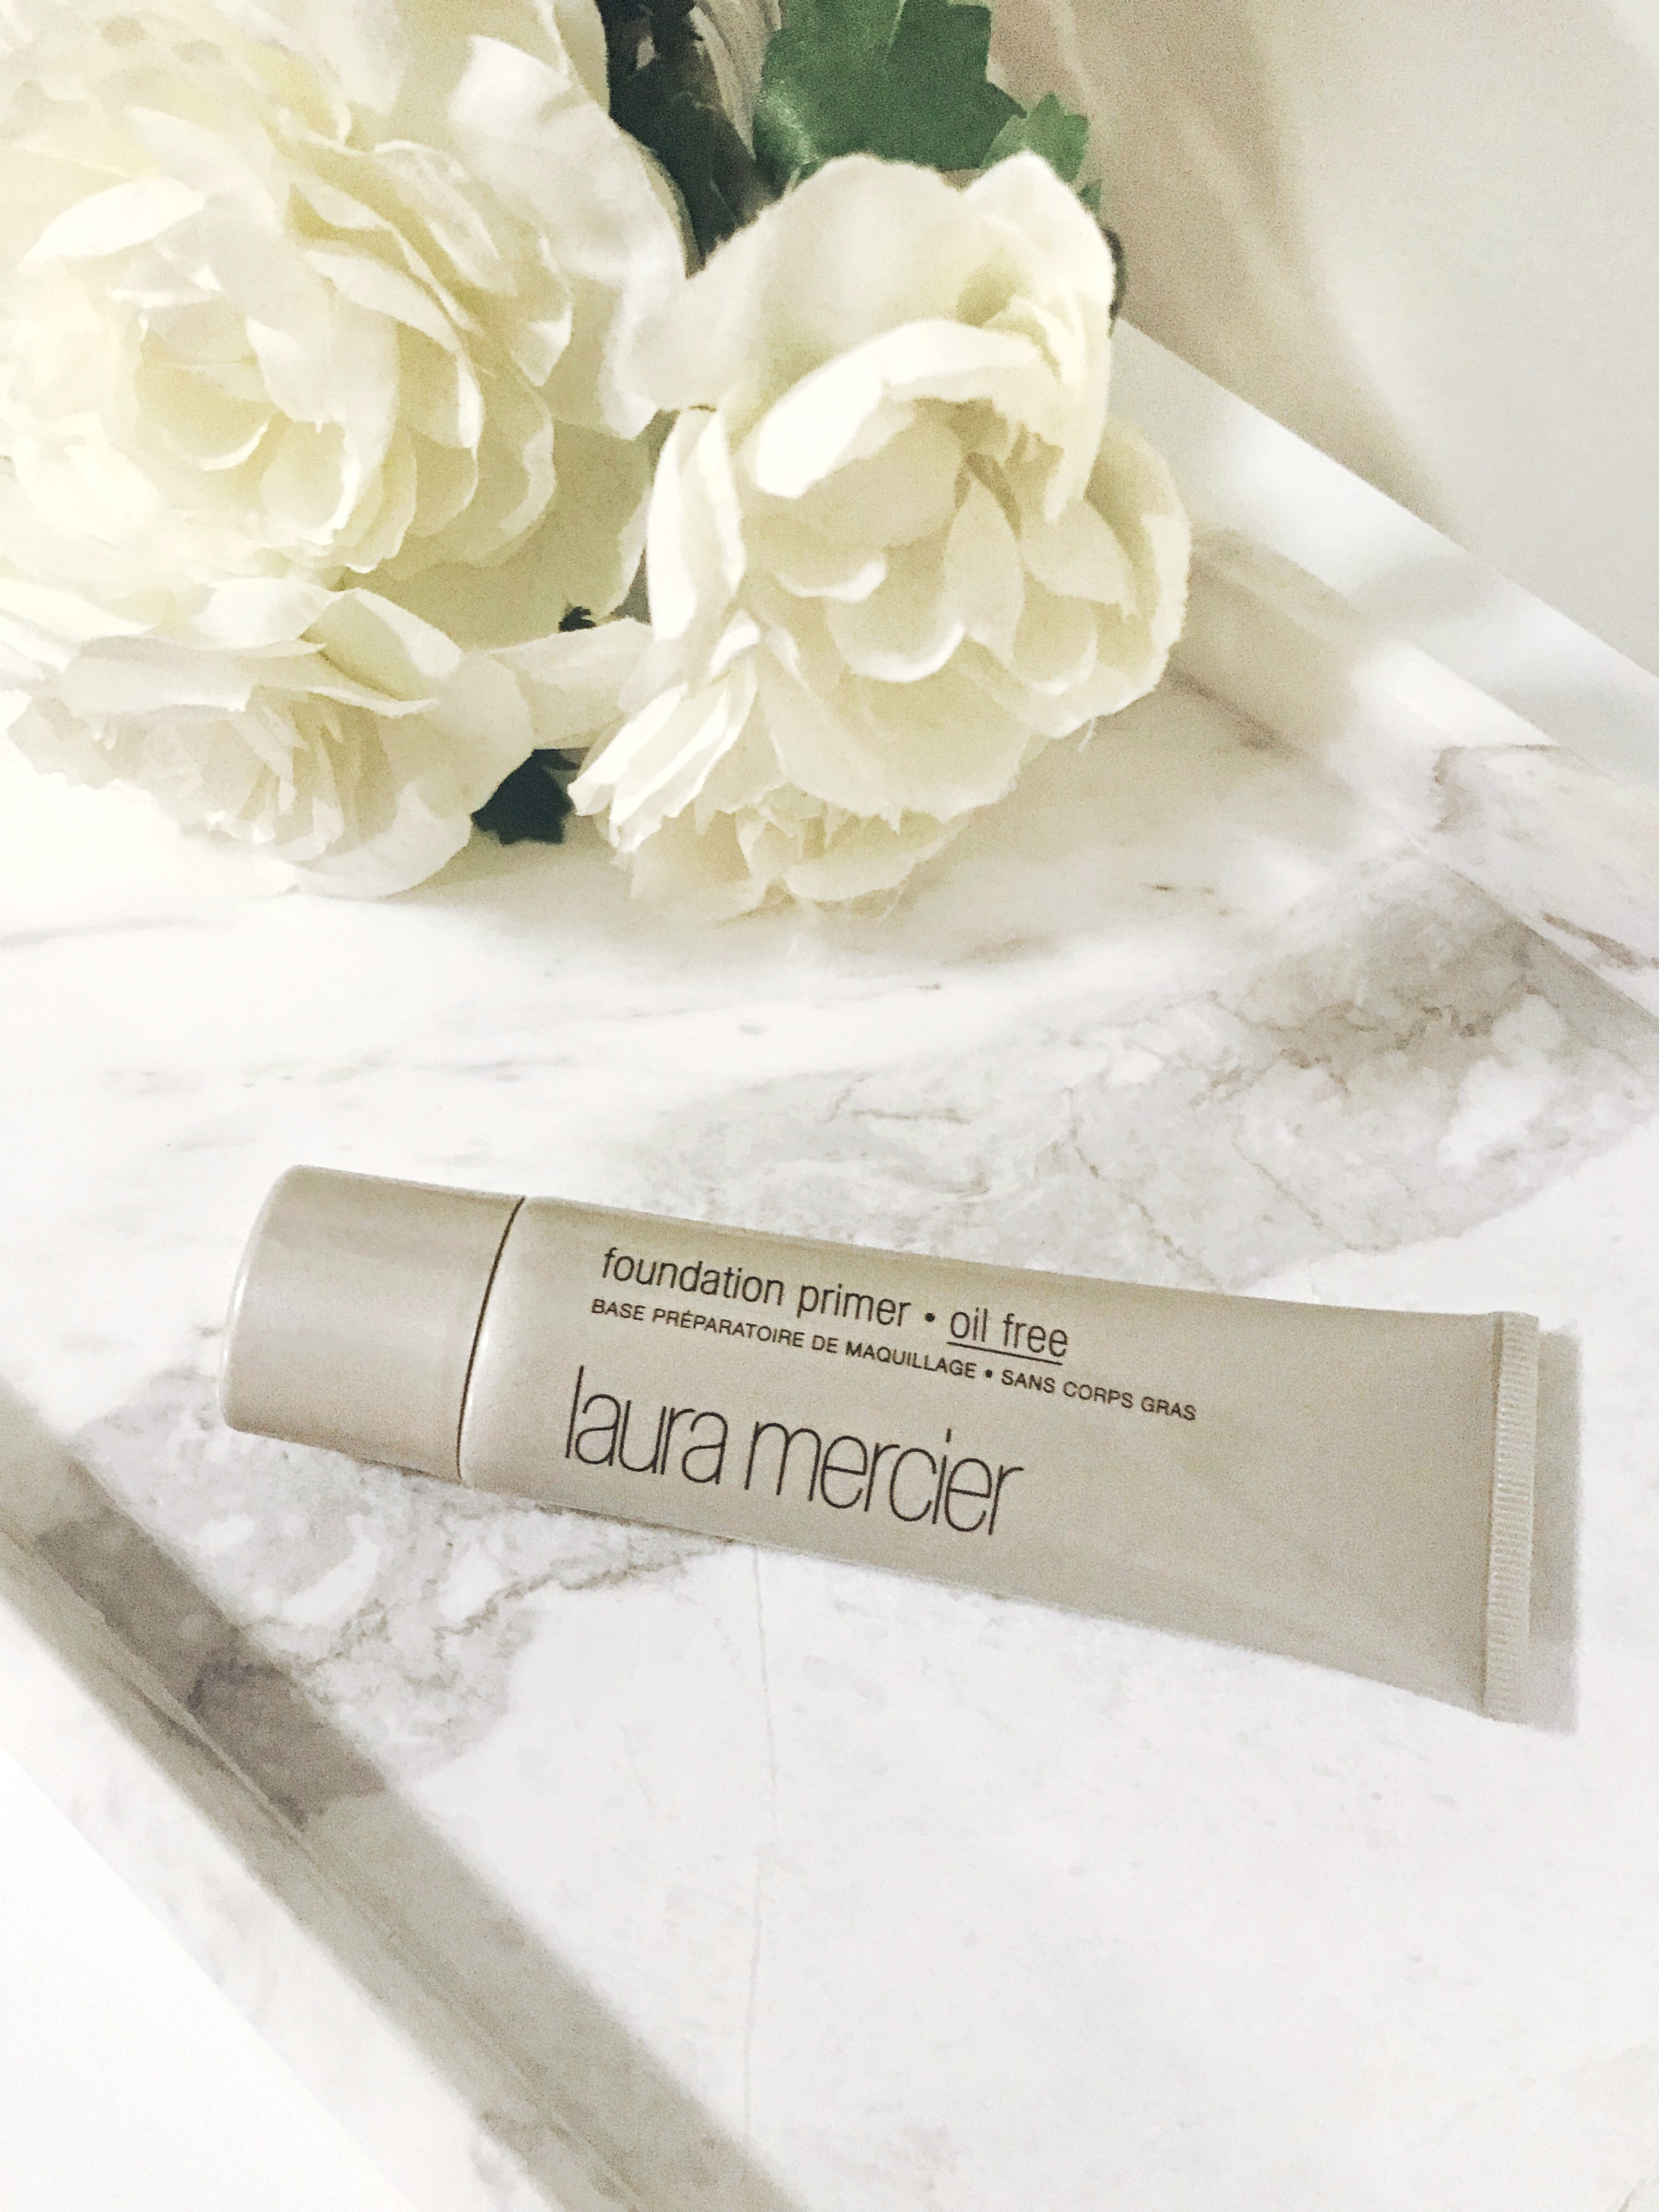 Monthly Beauty Favorites, Laura Mercier Foundation Primer, Helena of Brooklyn Blonde